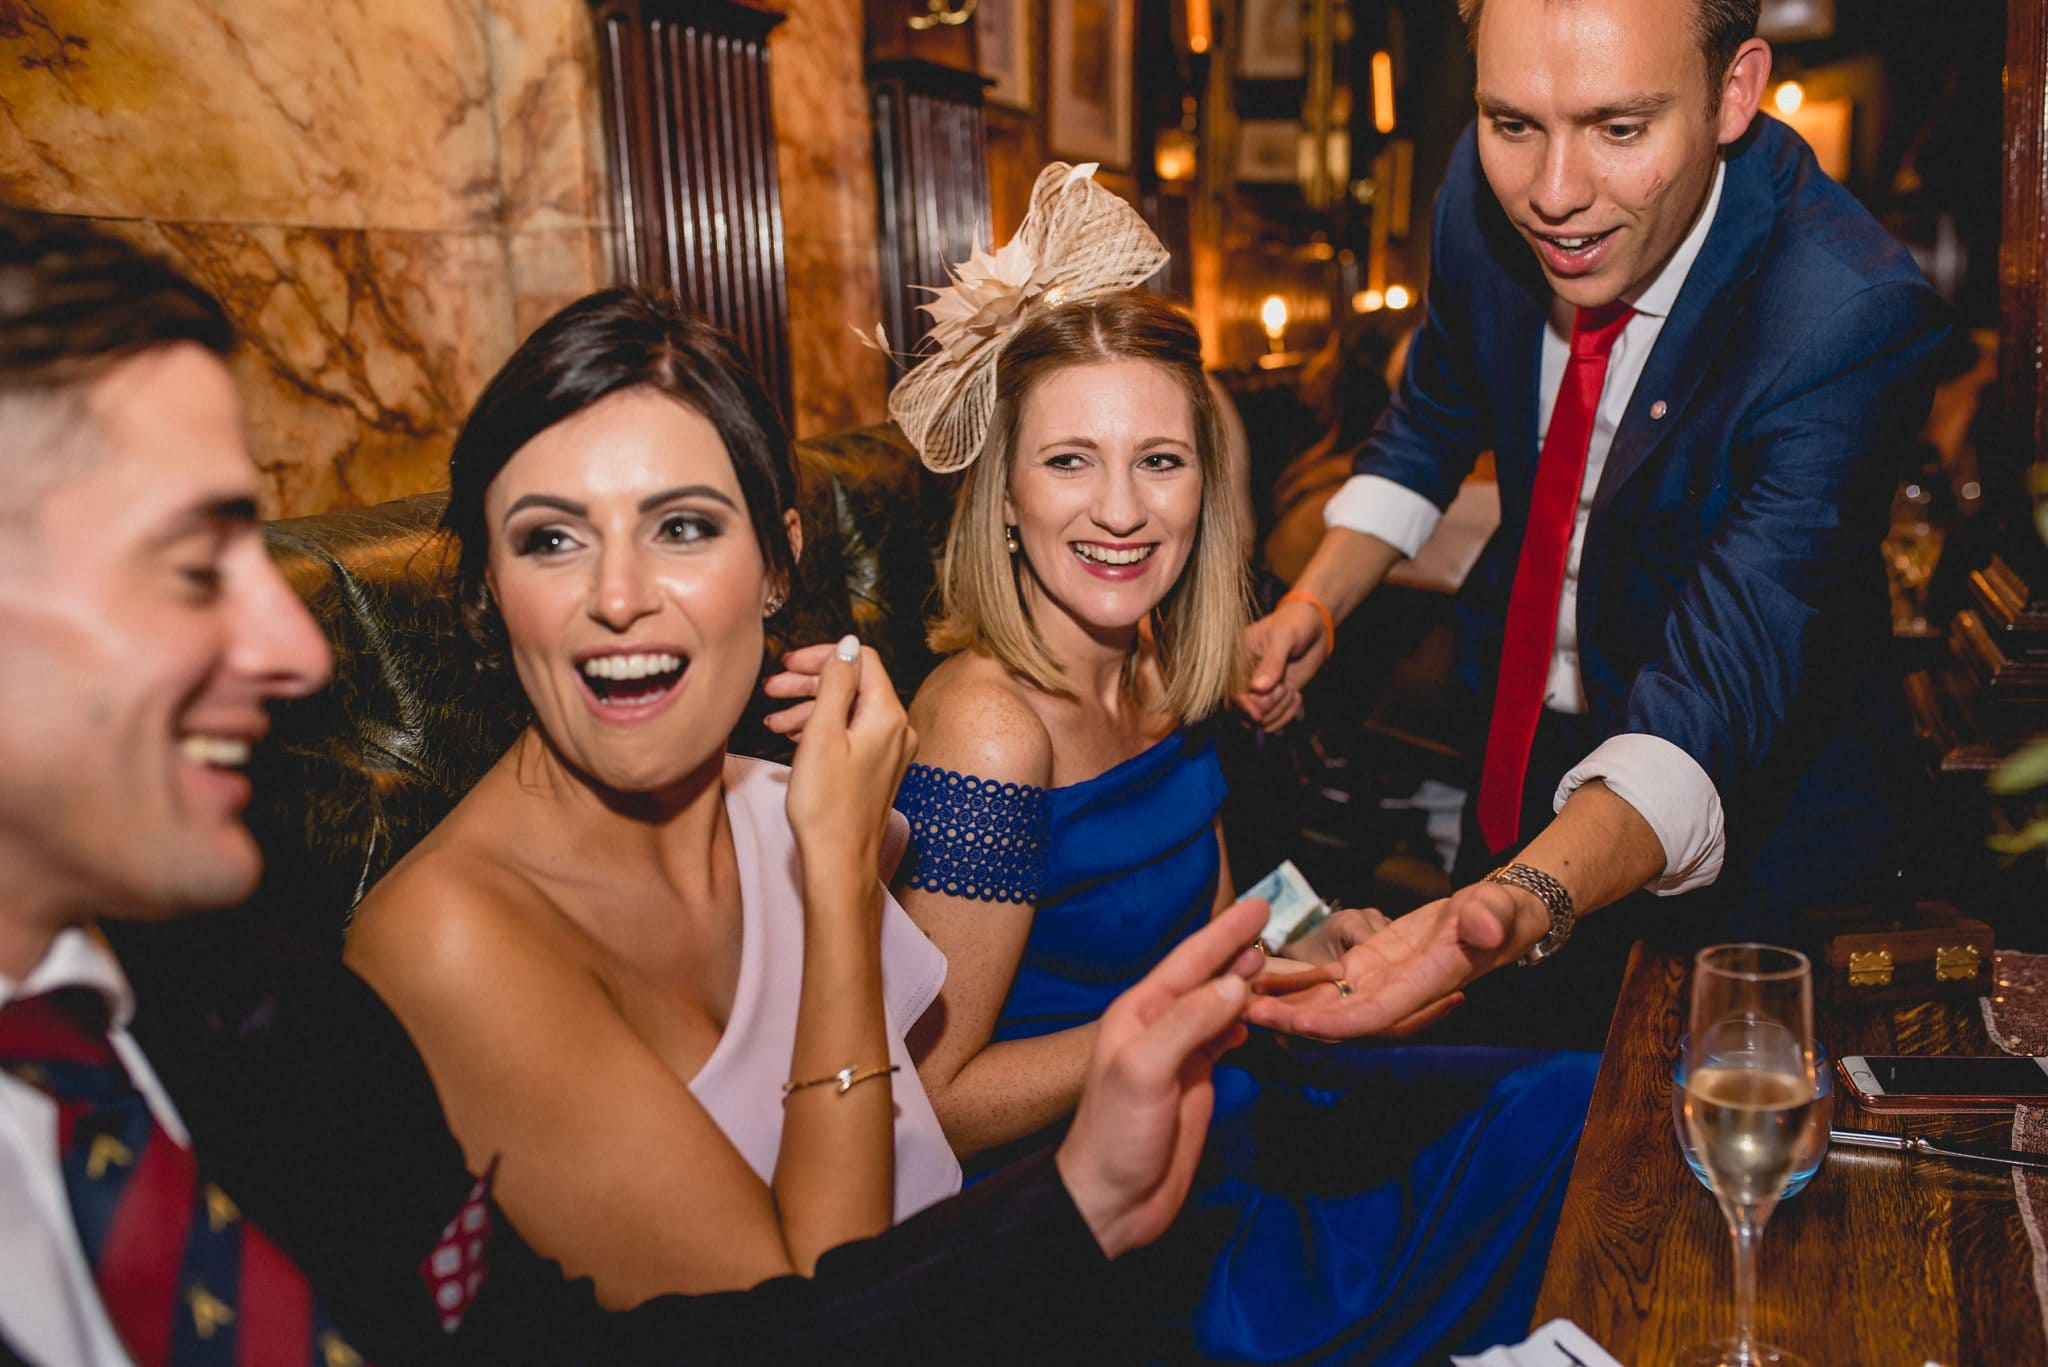 Magician Neil Granger wows guests at the reception of this Tower of London wedding